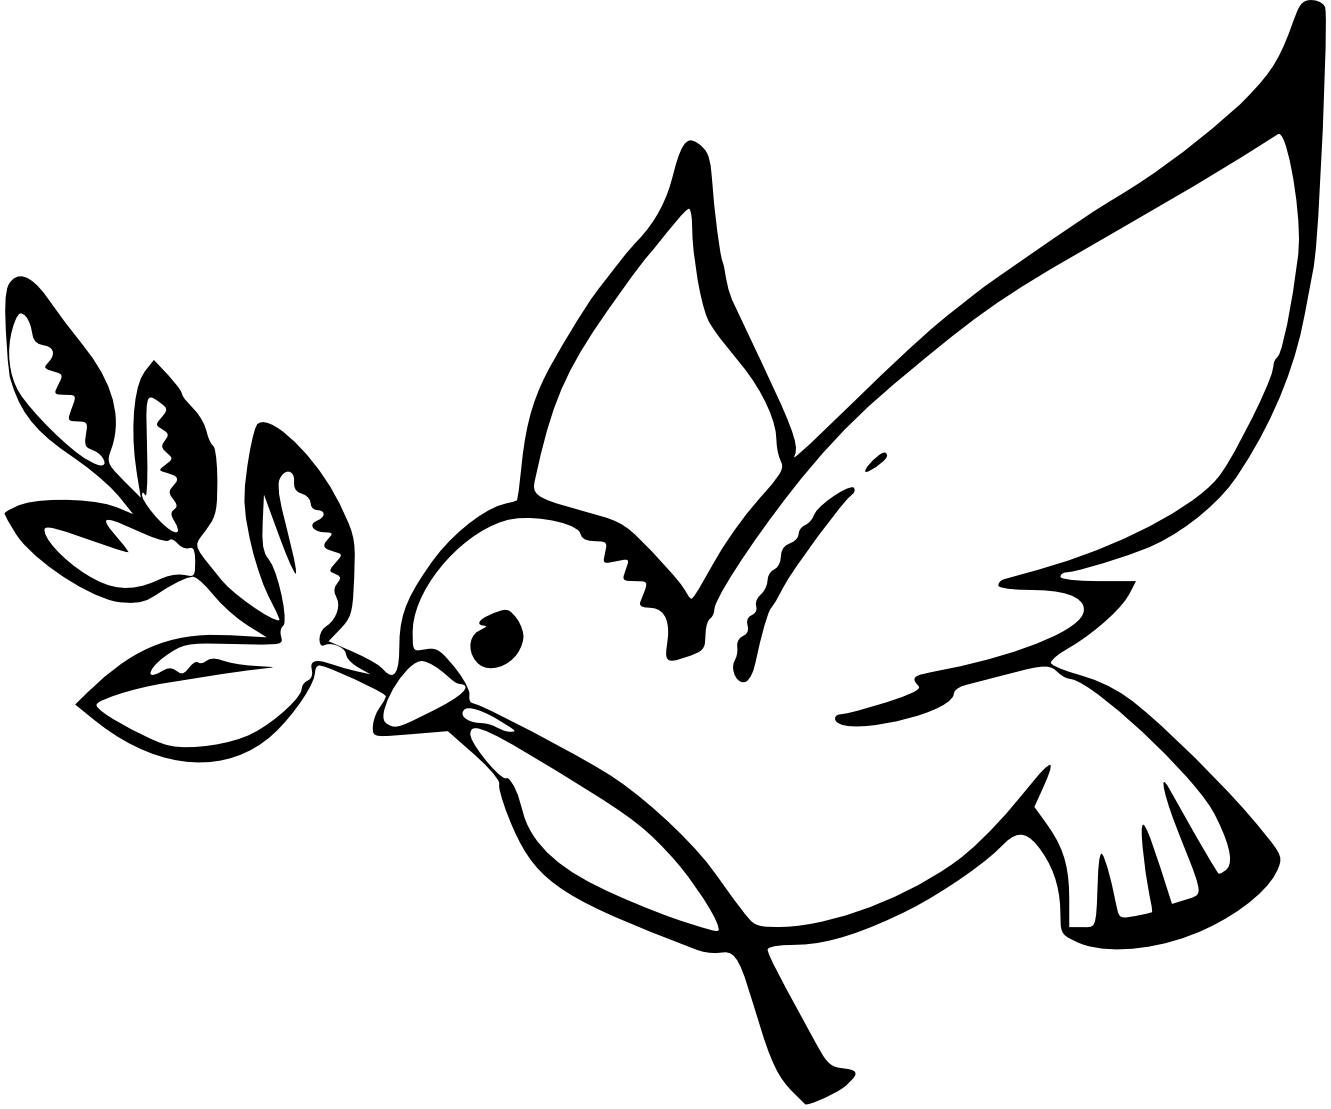 pictures of doves to color free printable peace sign coloring pages coloring pages to doves color of pictures